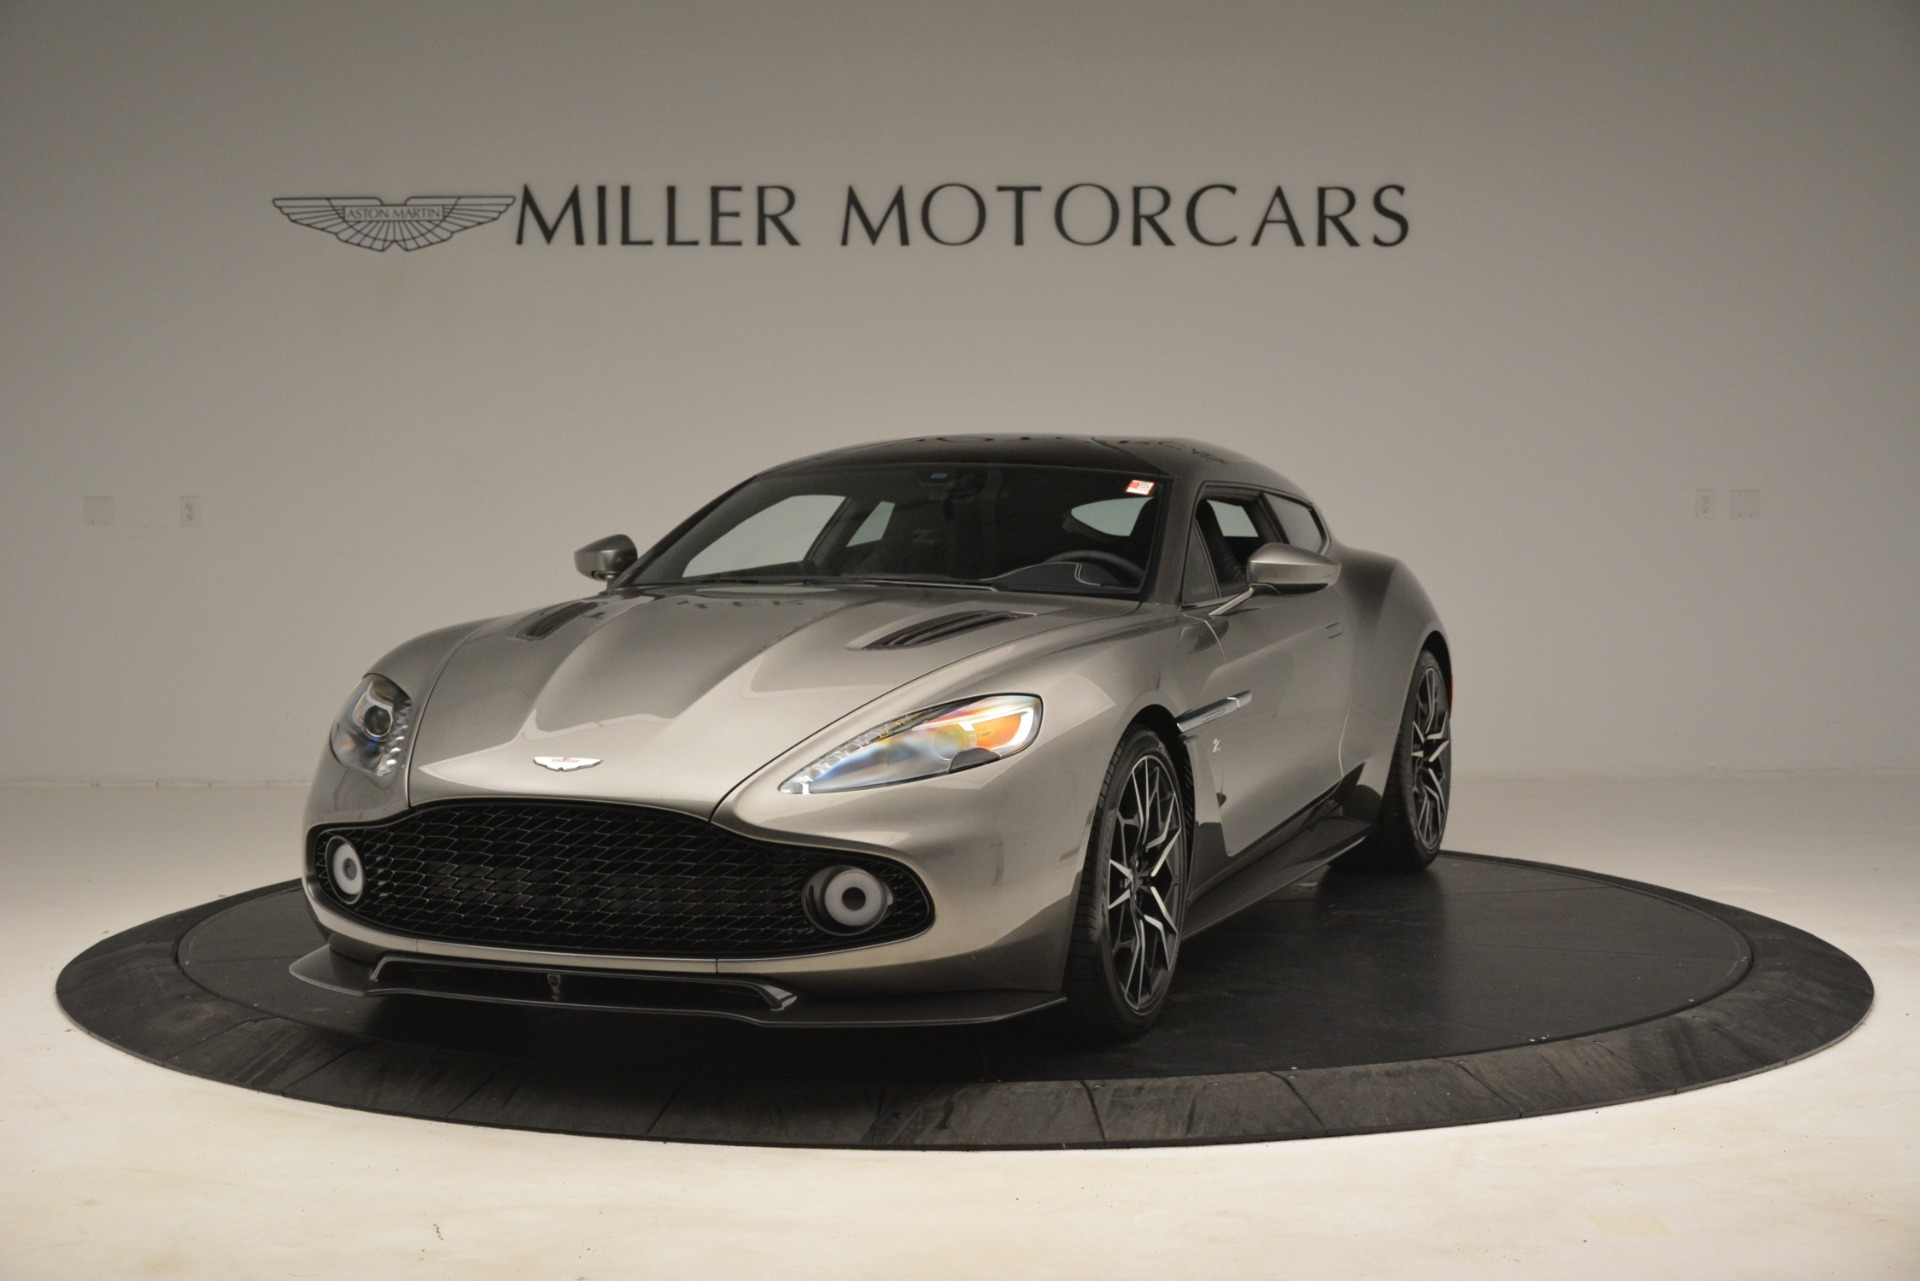 New 2019 Aston Martin Vanquish Zagato Shooting Brake For Sale 899 131 Miller Motorcars Stock 7548c